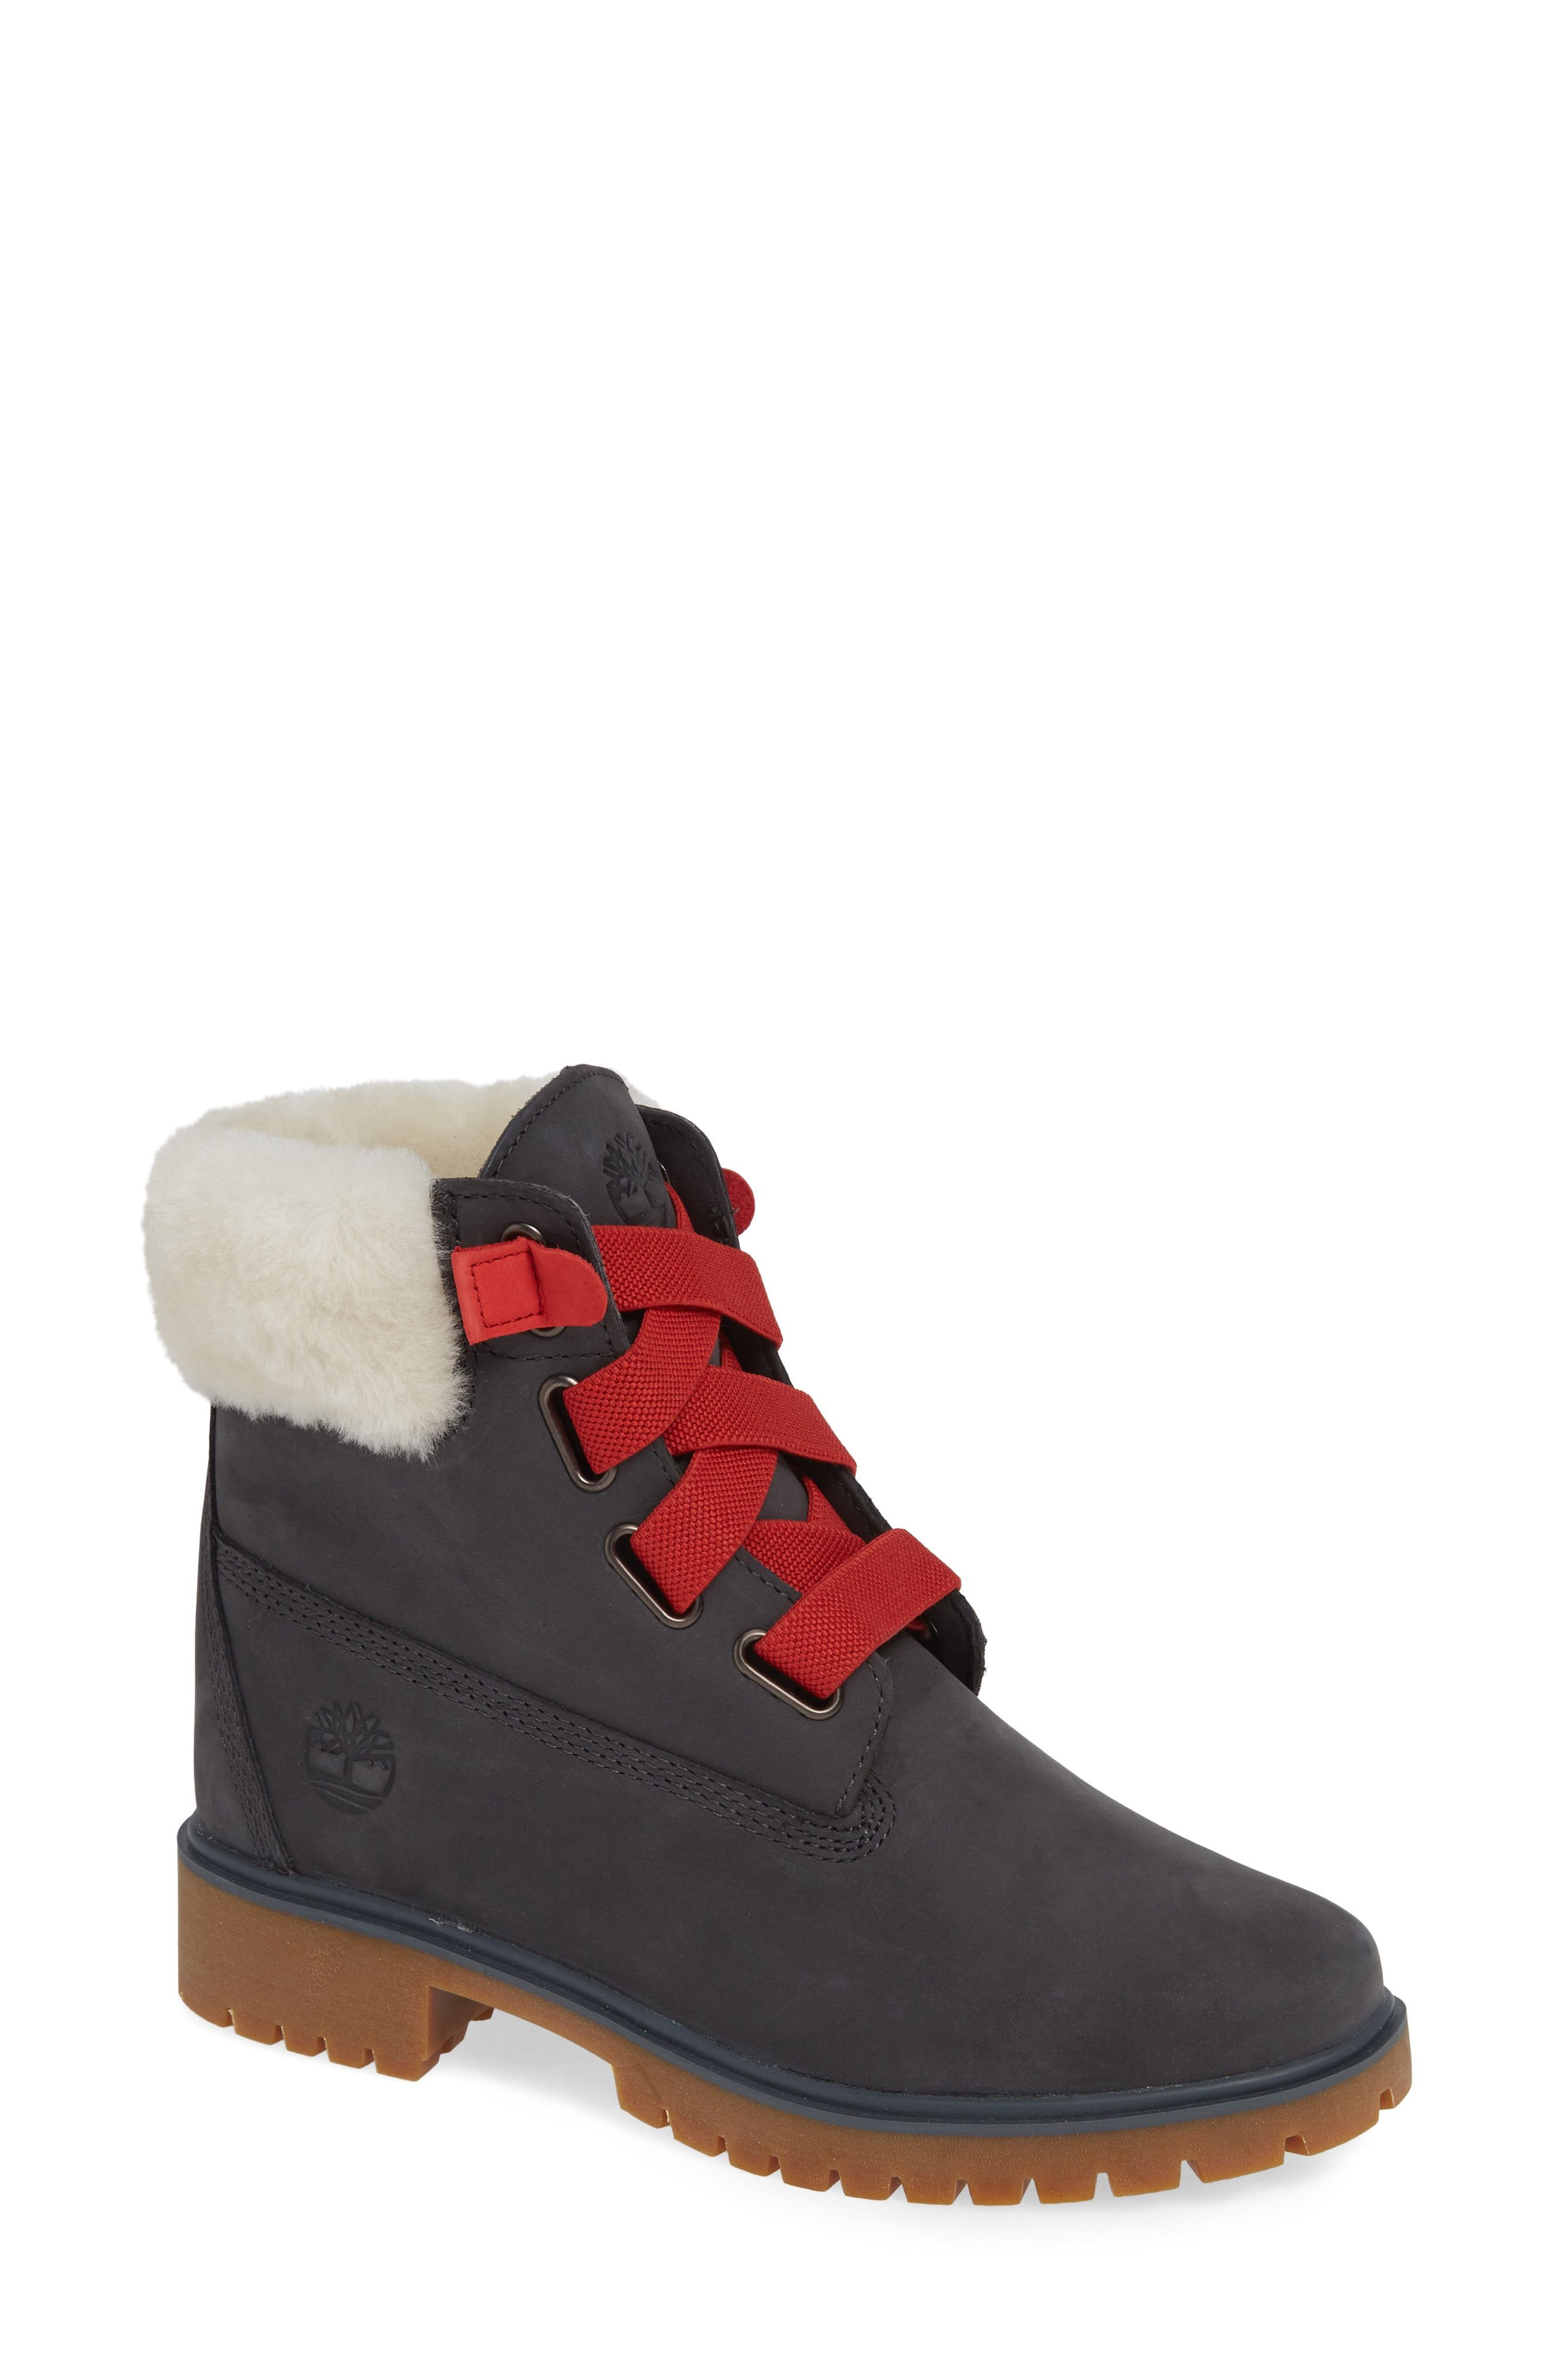 4d29dd7f6d9 Timberland Convenience Waterproof Boot with Genuine Shearling Trim  available at  Nordstrom